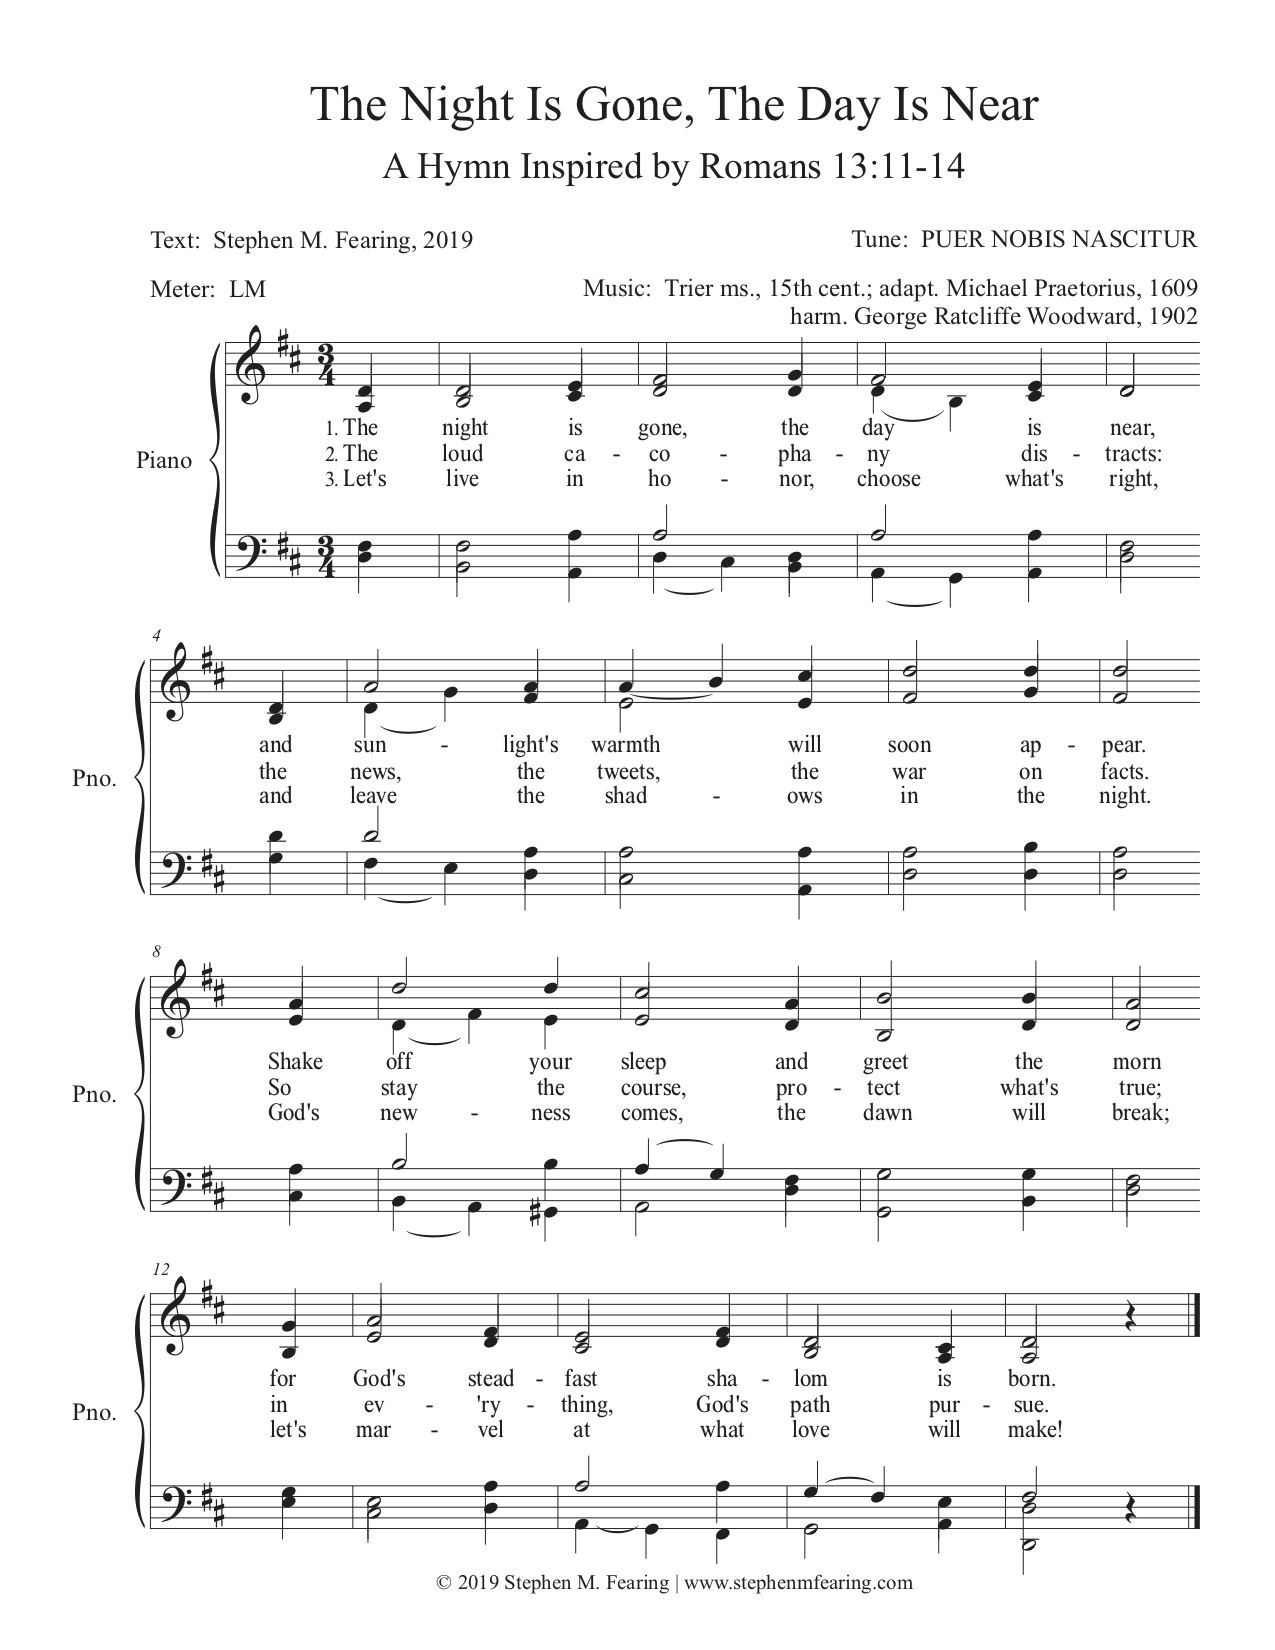 The Night Is Gone, The Day Is Near (PUER NOBIS NASCITUR) - Score.jpg